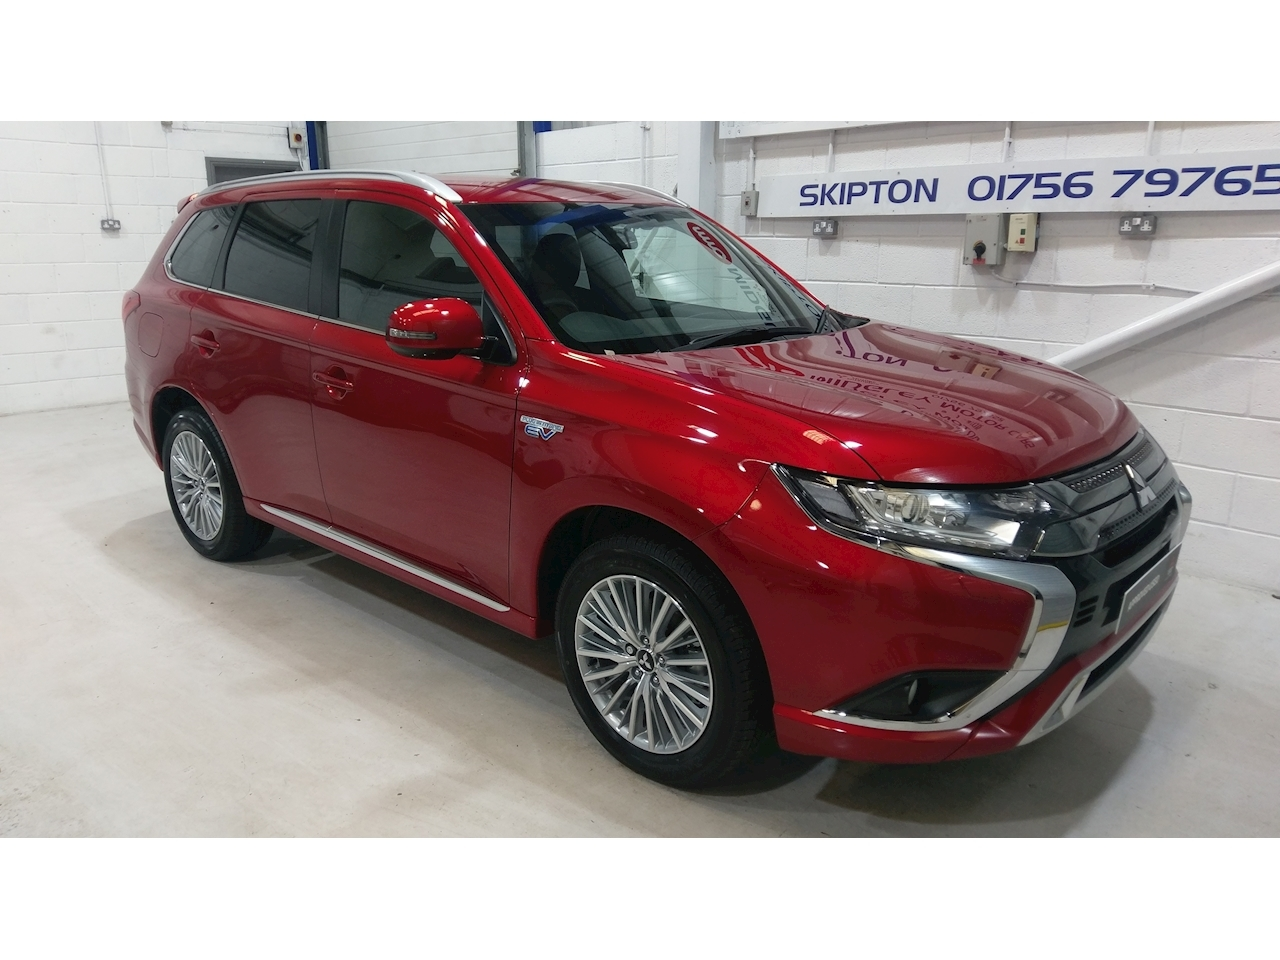 Mitsubishi Outlander Dynamic PHEV Auto 2.2 Estate CVT Petrol/Electric